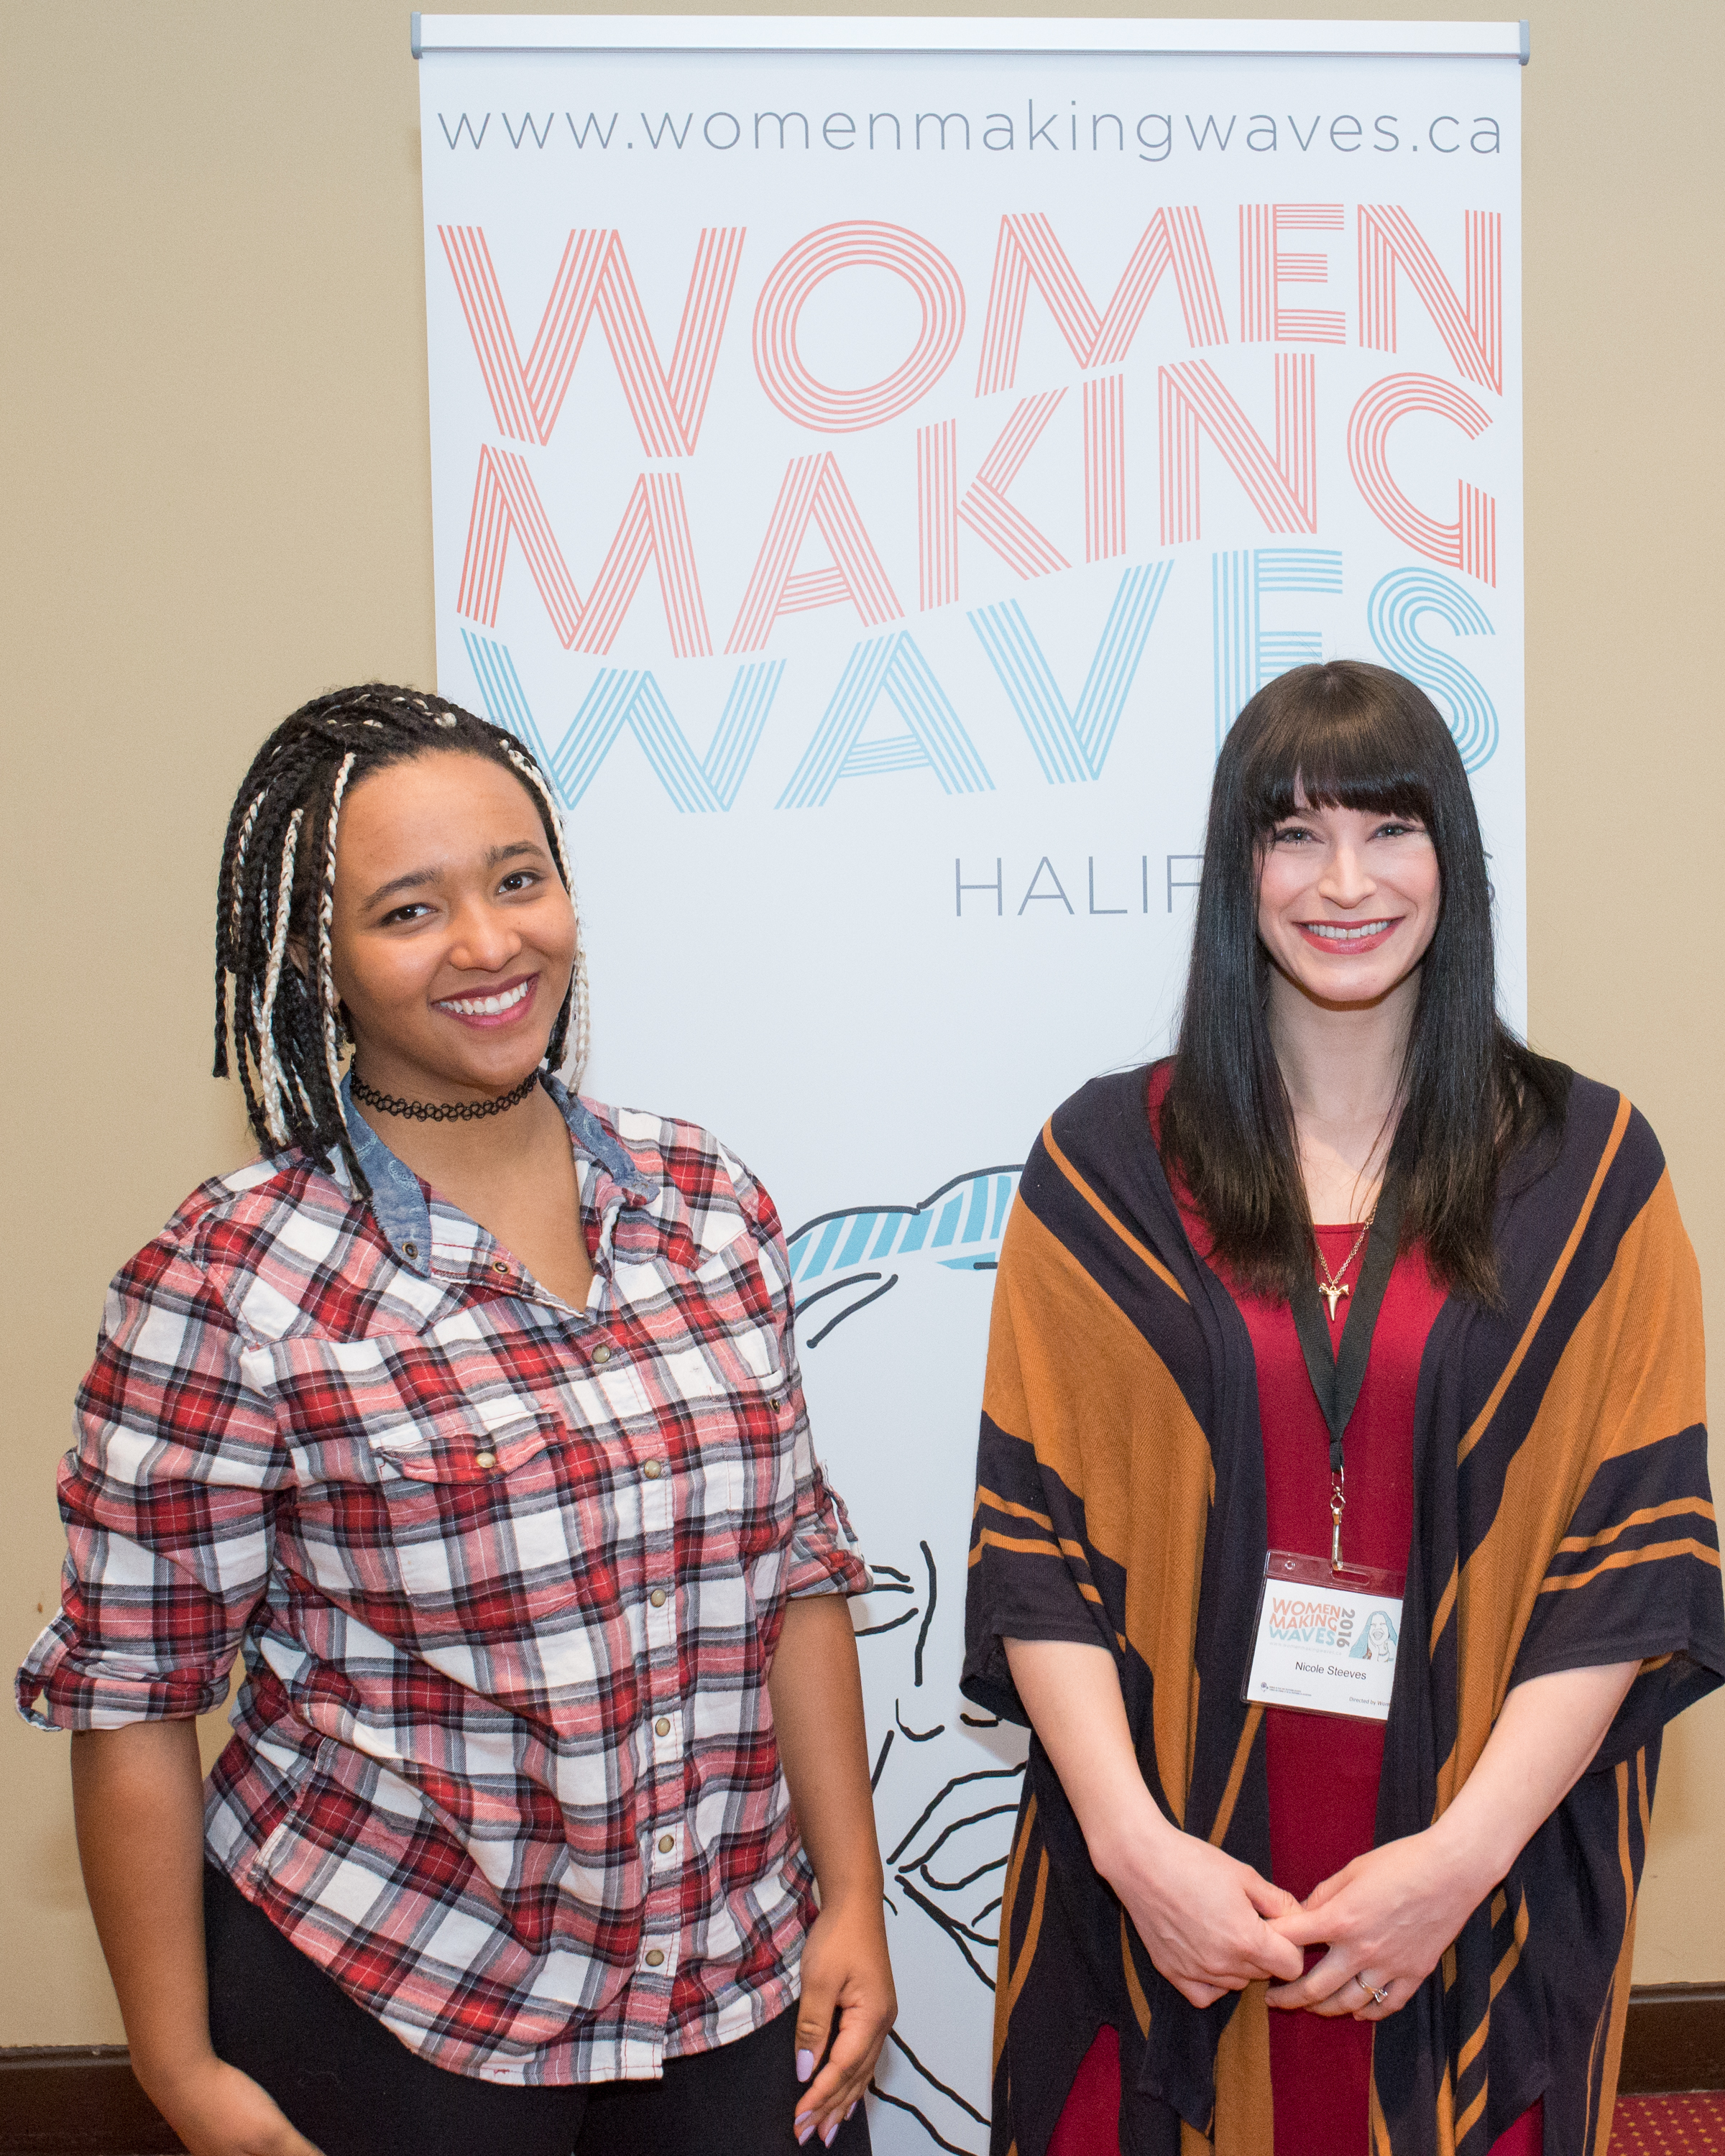 Koumbie and Nicole Steeves at this years Women Making Waves conference.